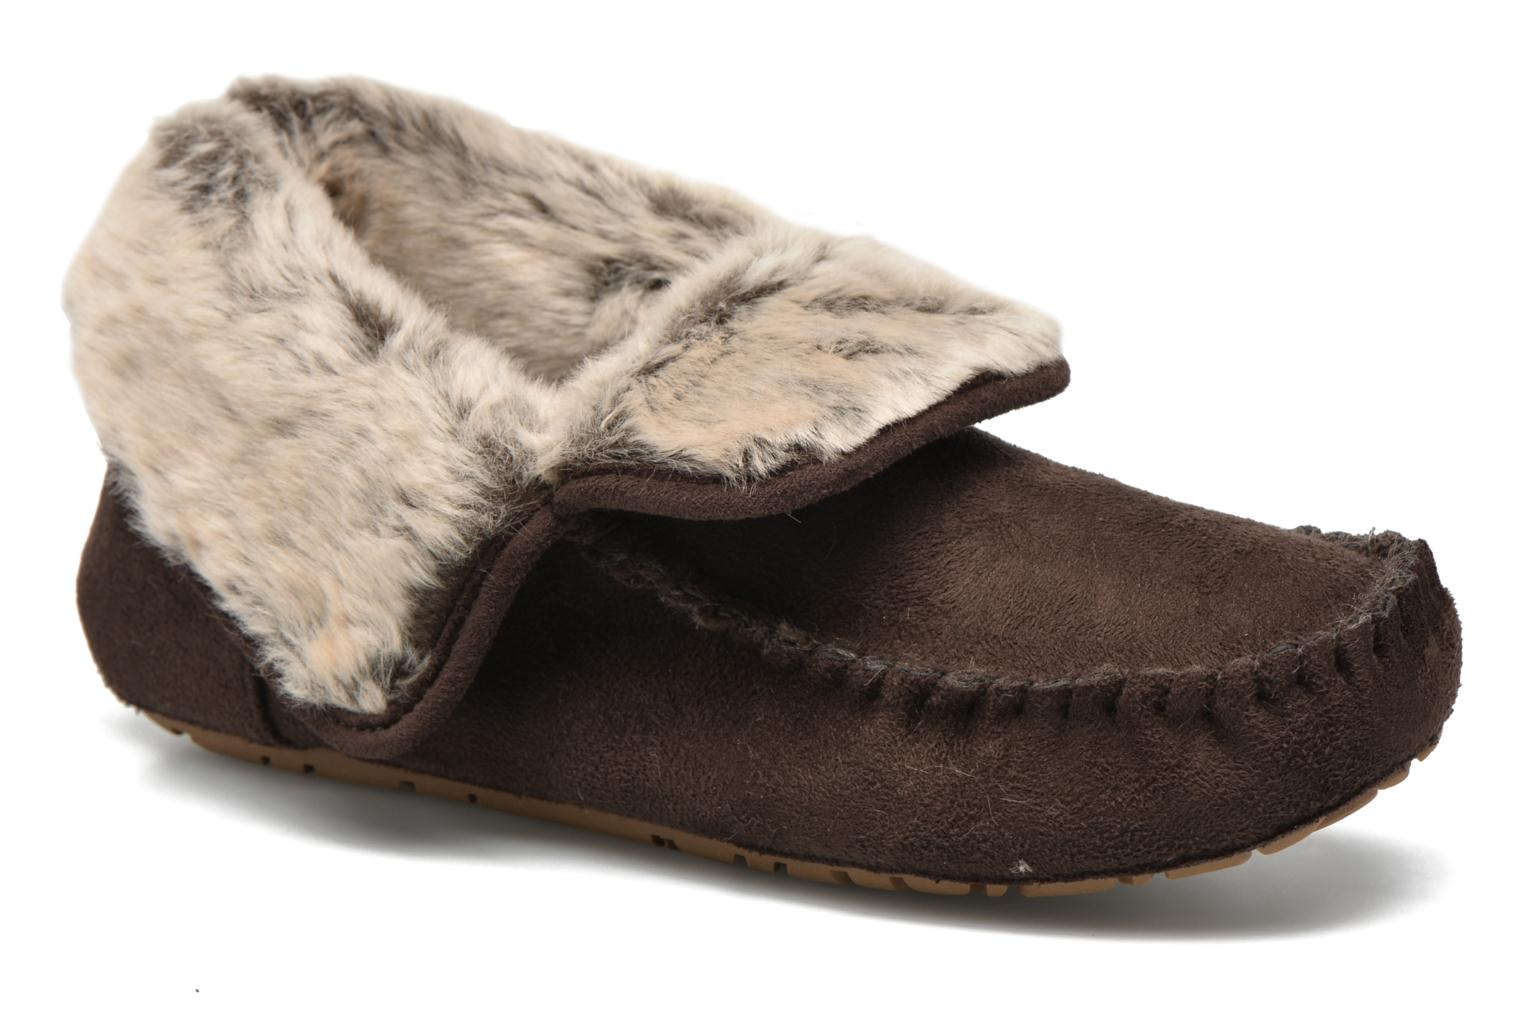 Suede bootie with fur